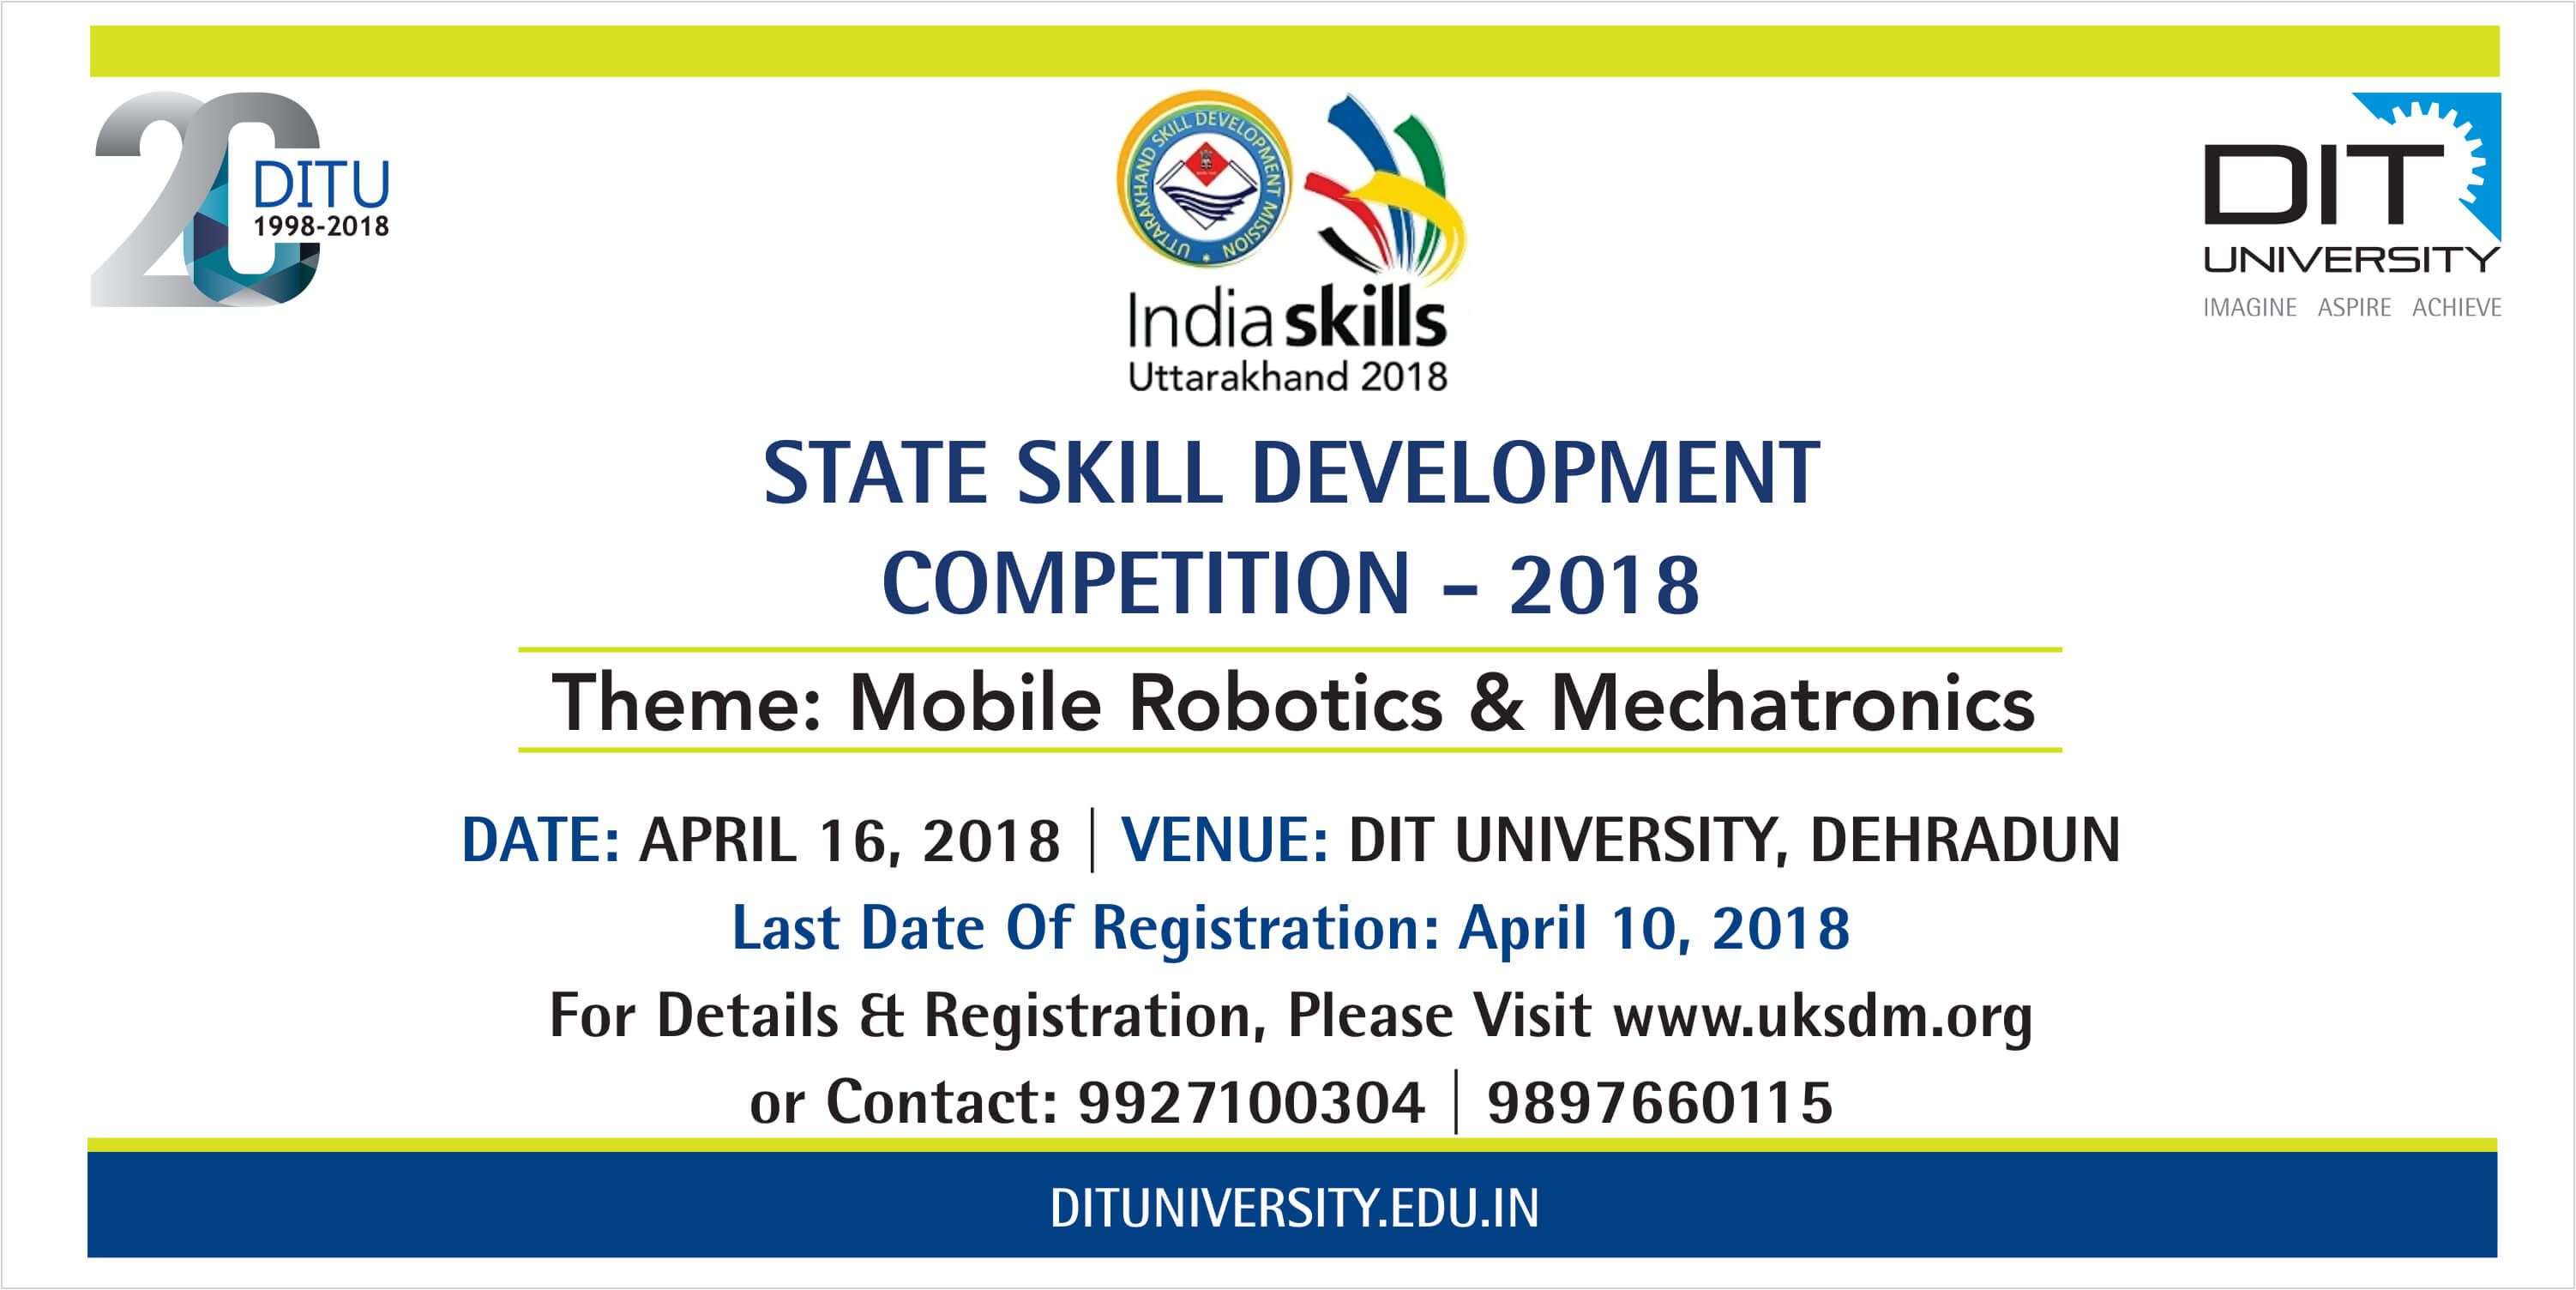 State Skill Development Competition - 2018